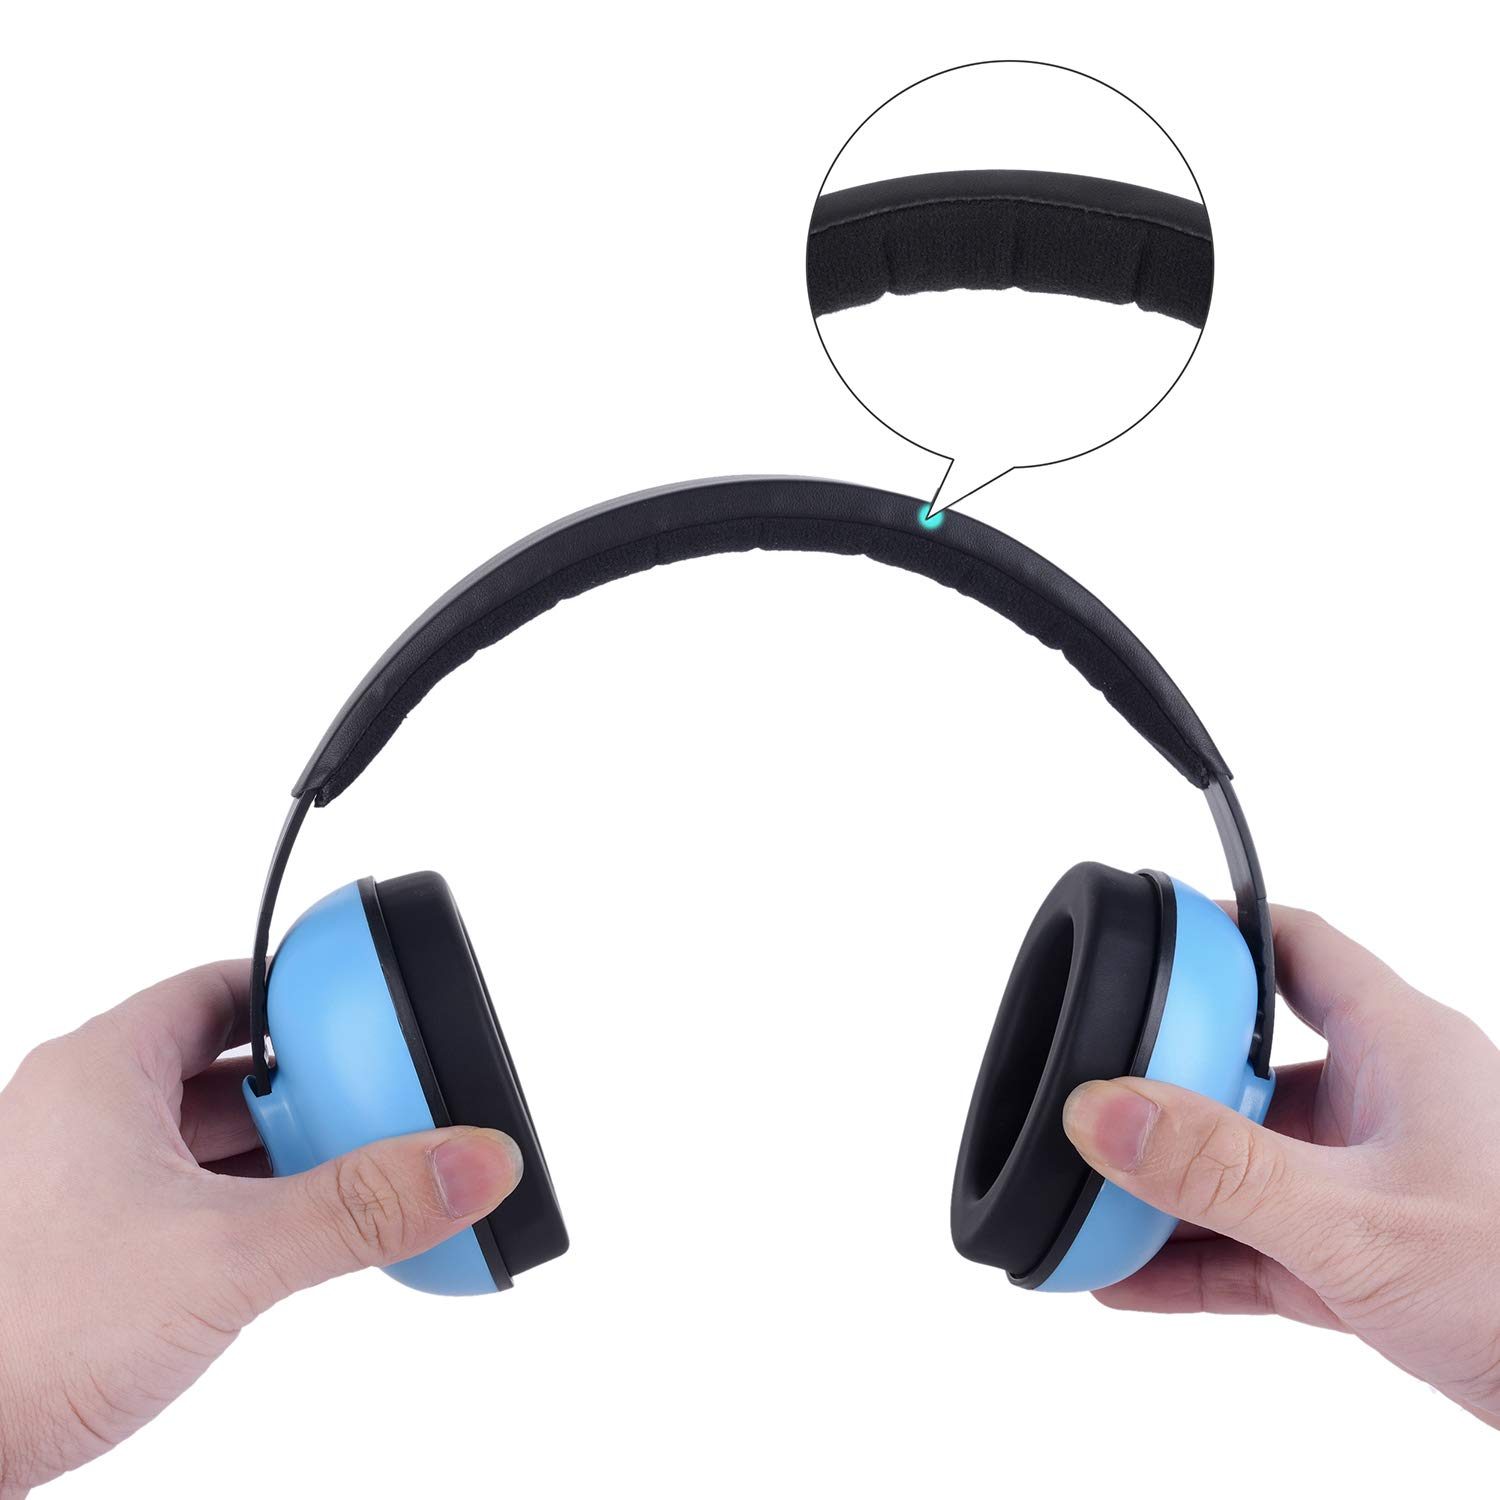 Baby Headphones Safety Ear Muffs Noise Reduction for Newborn Infant Autism Kids Toddlers Sound Cancelling Headphones for Sleeping Studying Airplane Concerts Movie Theater Fireworks, Blue by ILOVEUS (Image #10)